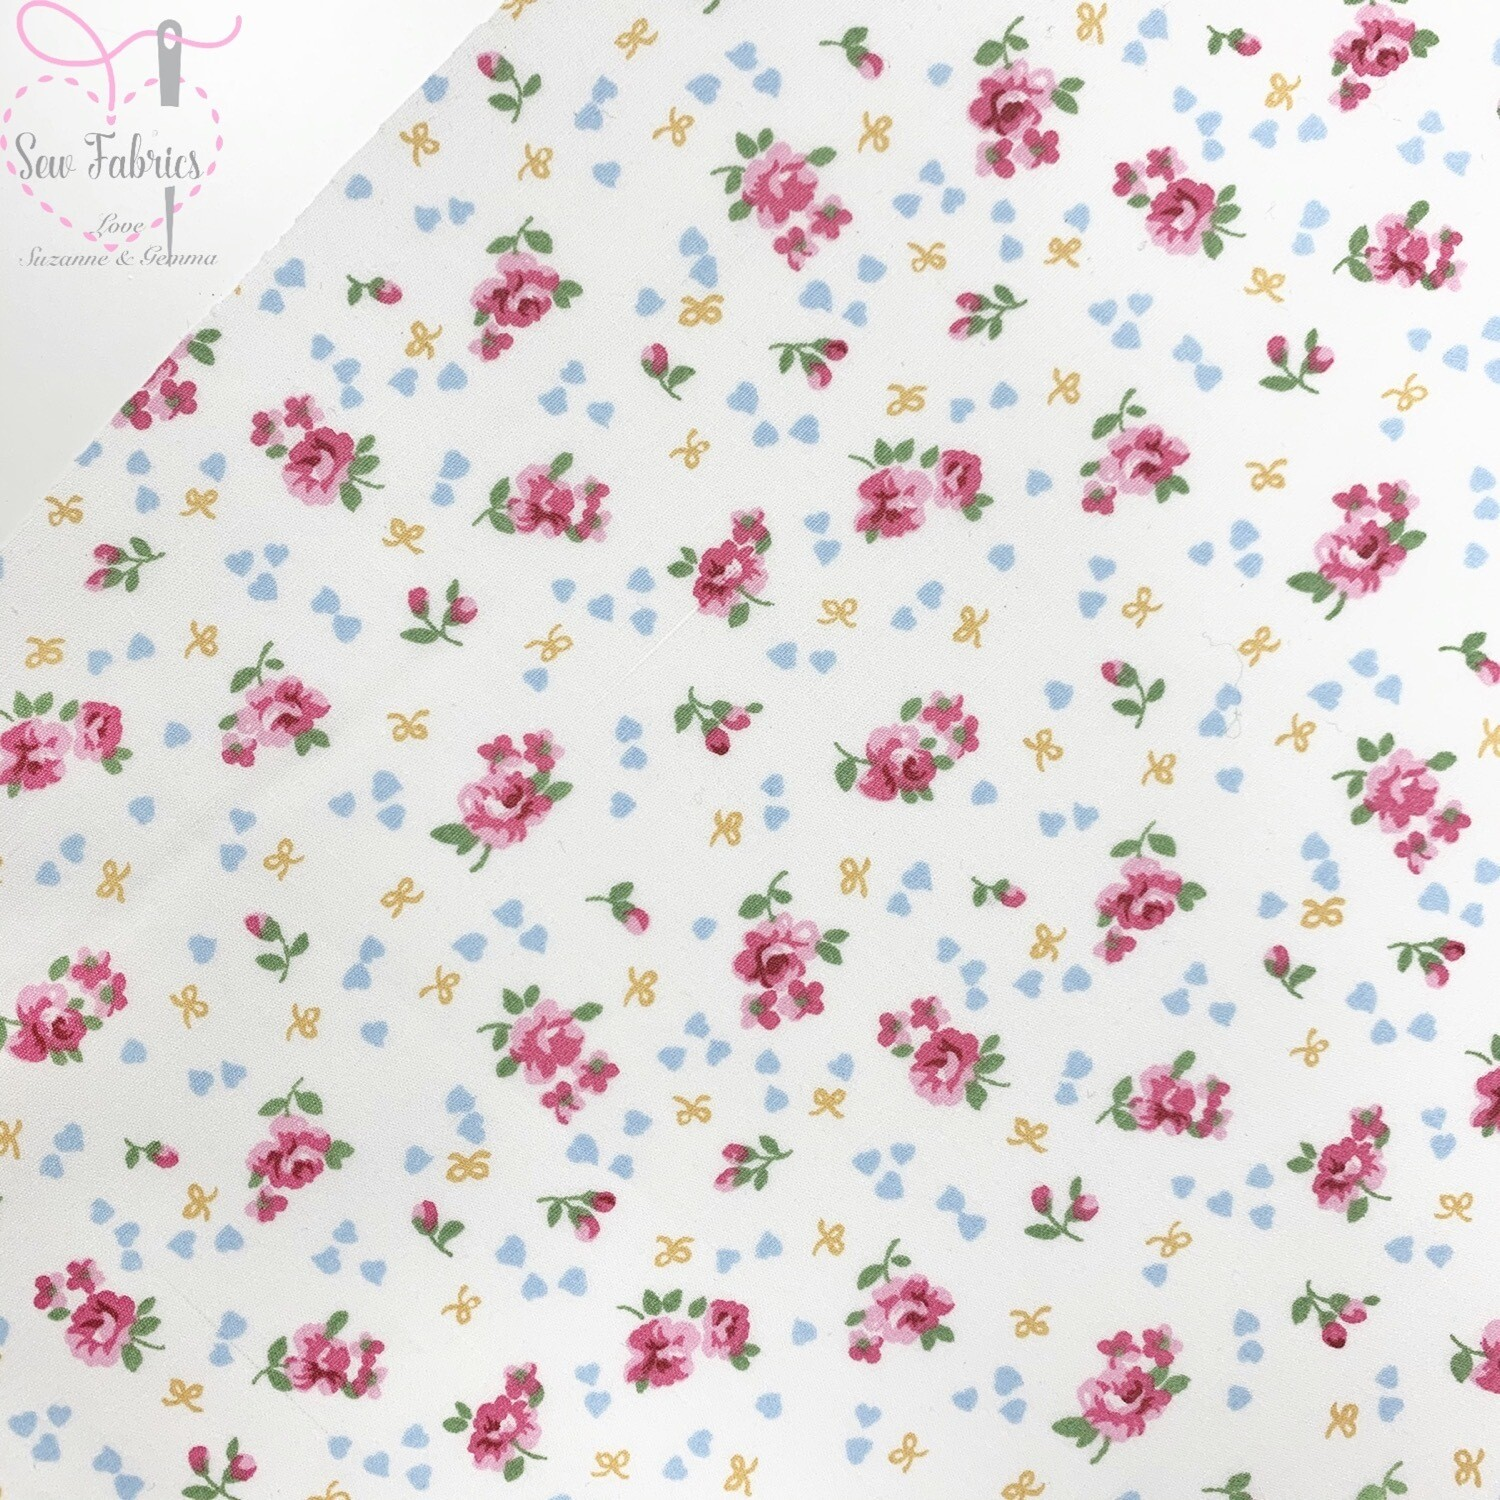 Rose & Hubble Ivory Ditsy Roses Floral Fabric 100% Cotton Poplin Cream Vintage Flower Material